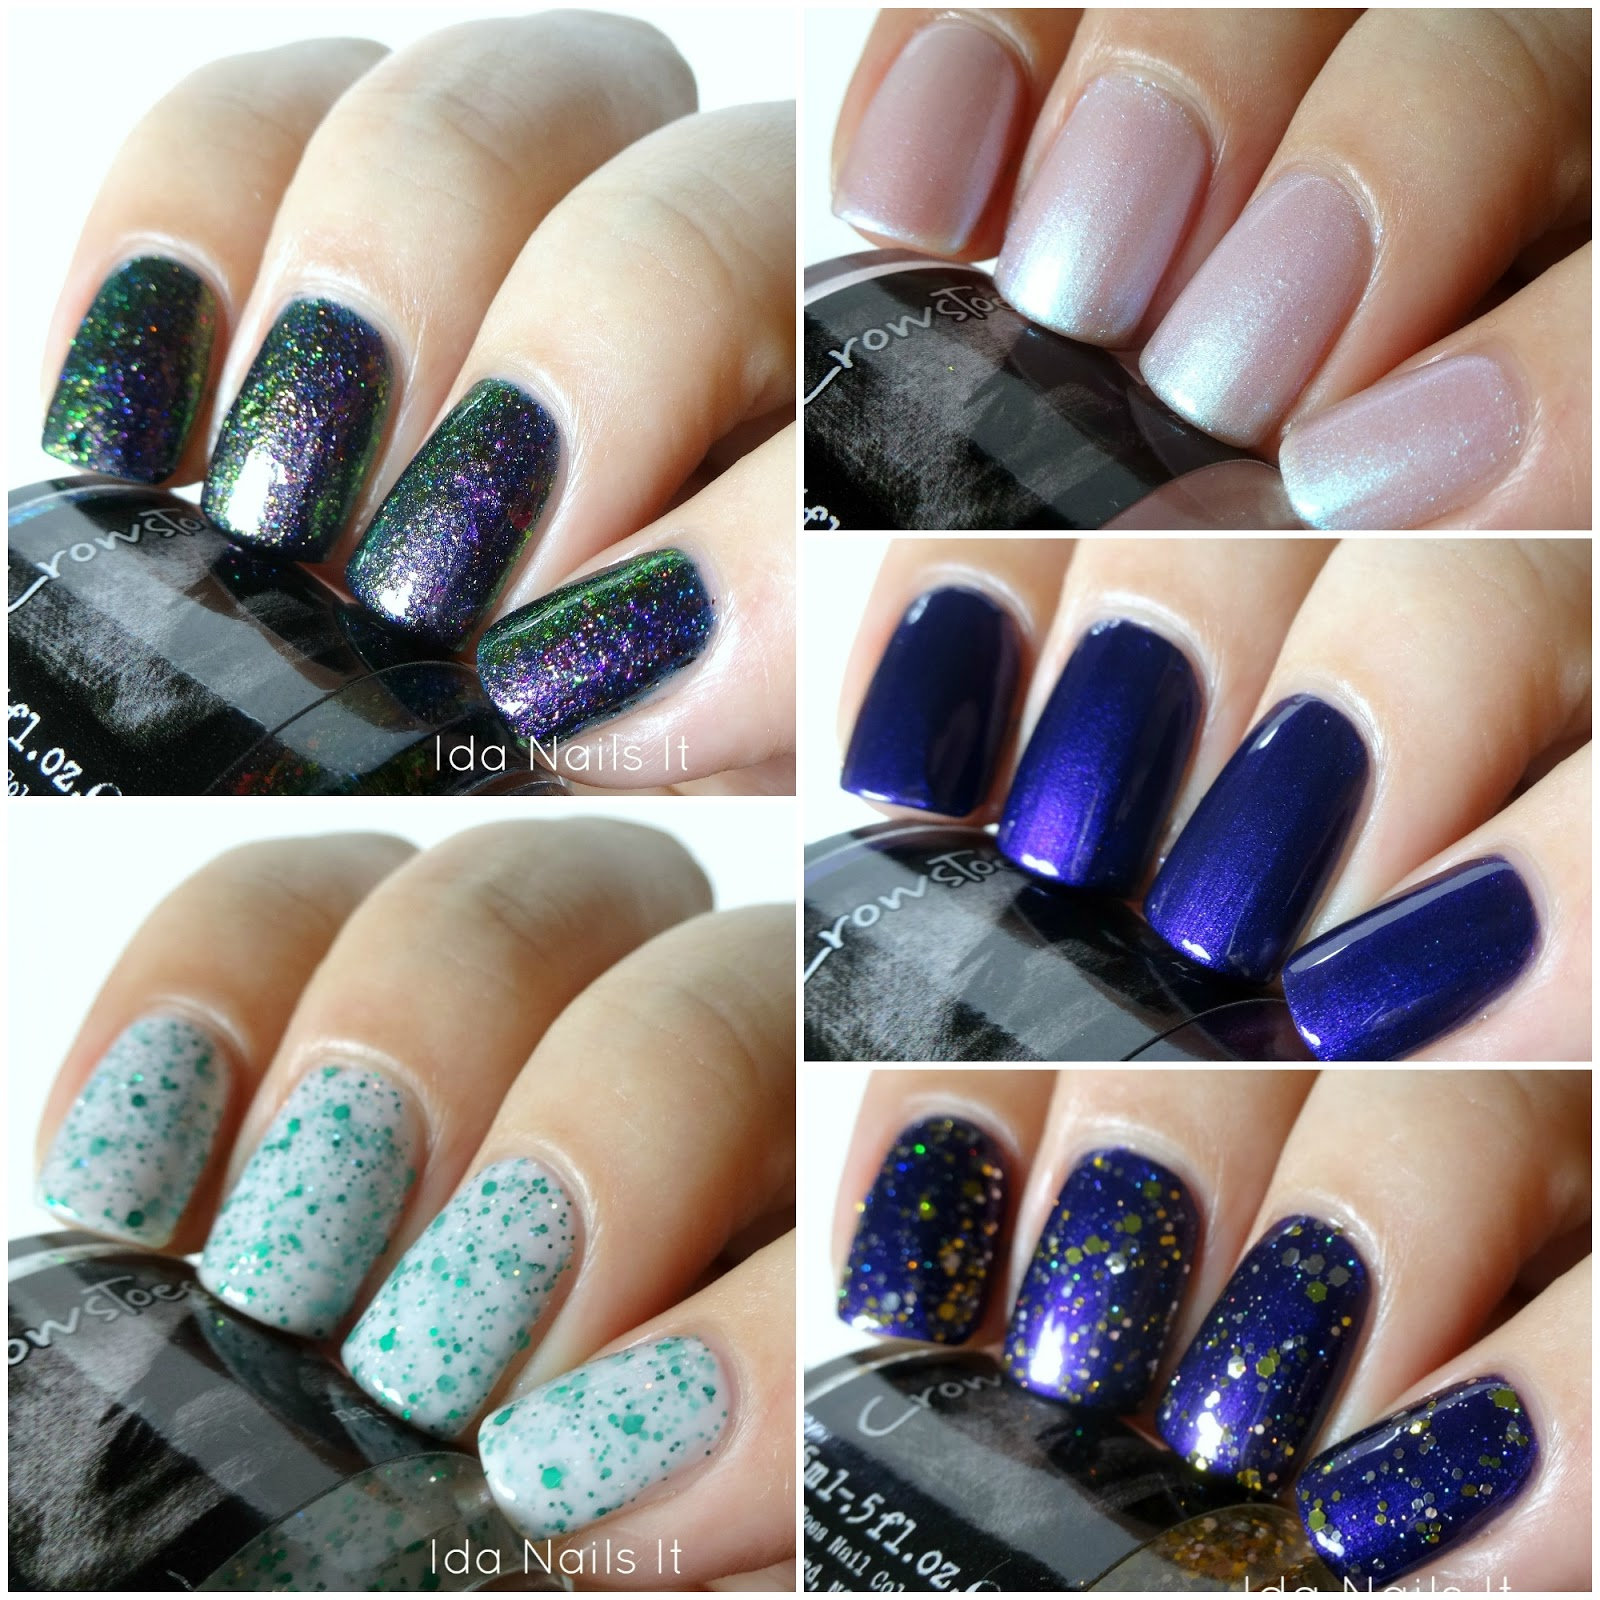 Ida Nails It: Crows Toes The Triple M Collection: Swatches and Review